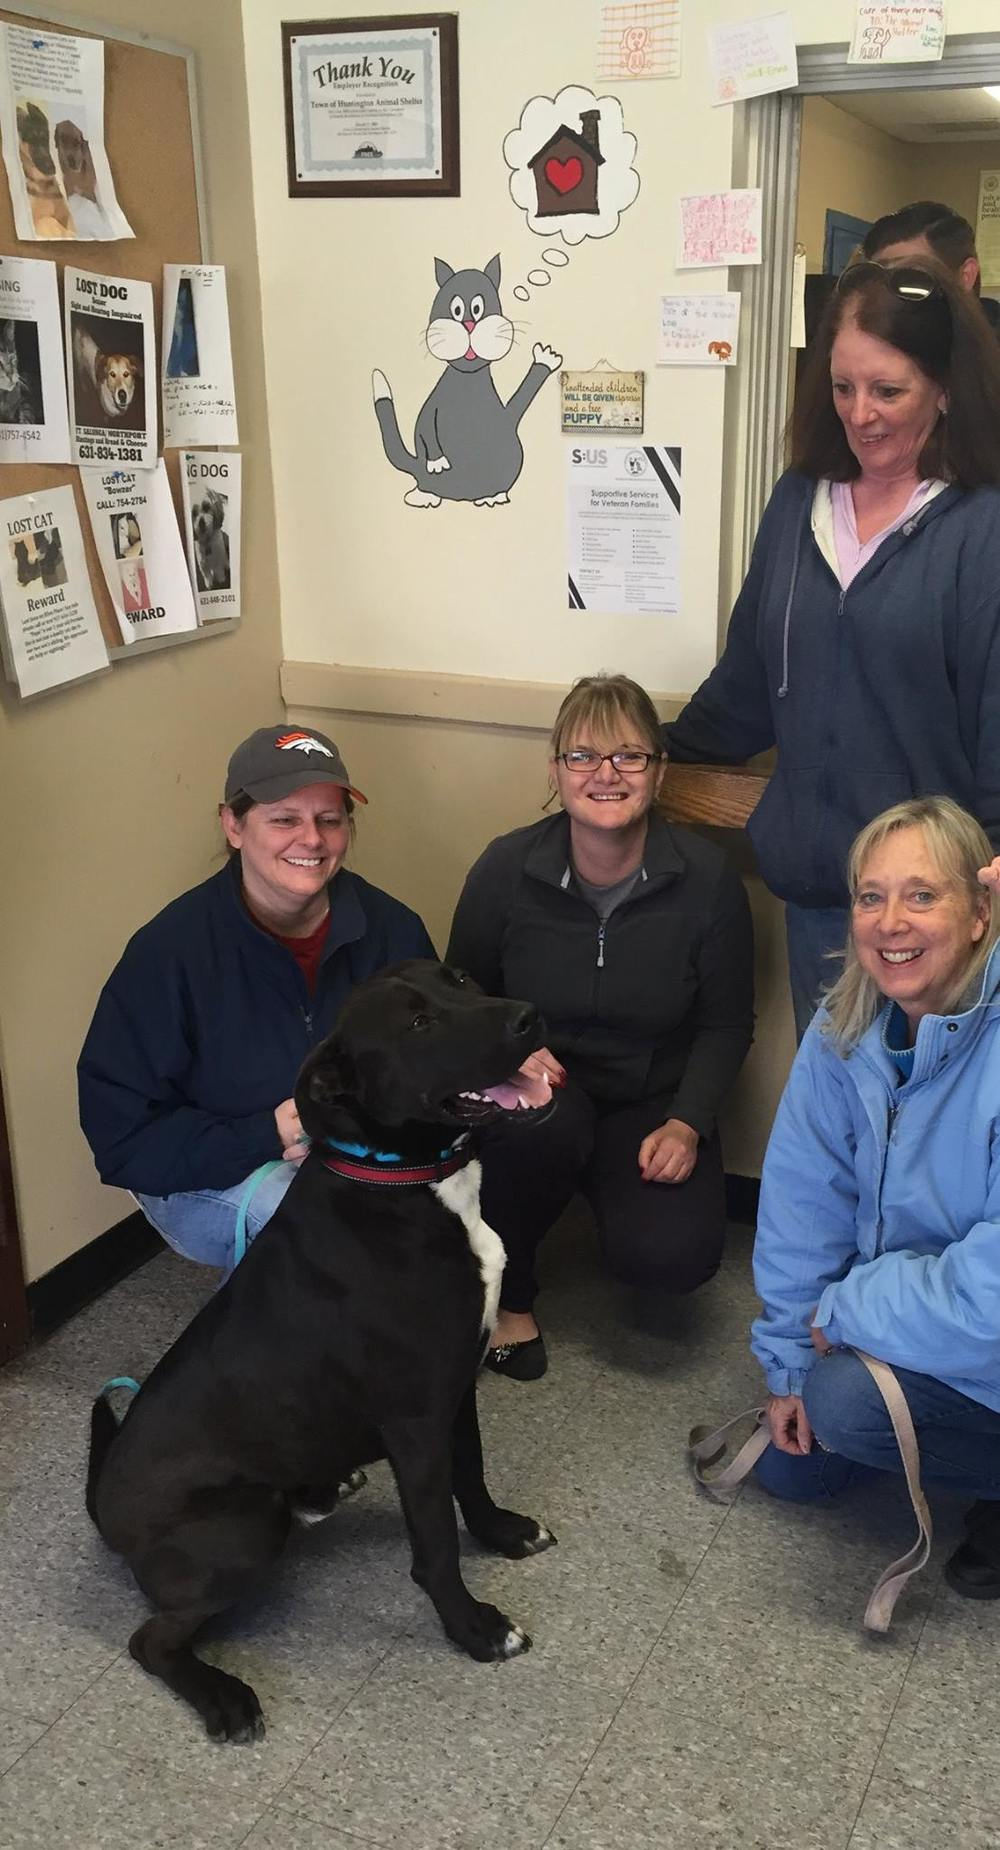 Stewy, a Great Dane mix who lived at the Huntington Animal shelter for over 2 years, was one of seven dogs adopted last week at the shelter. Stewy is pictured with his new owner, Lisa Donelly, left, and shelter volunteers Jodi Record, Jane Barbato, June Johnson. Photo by Facebook/Huntington Animal Shelter